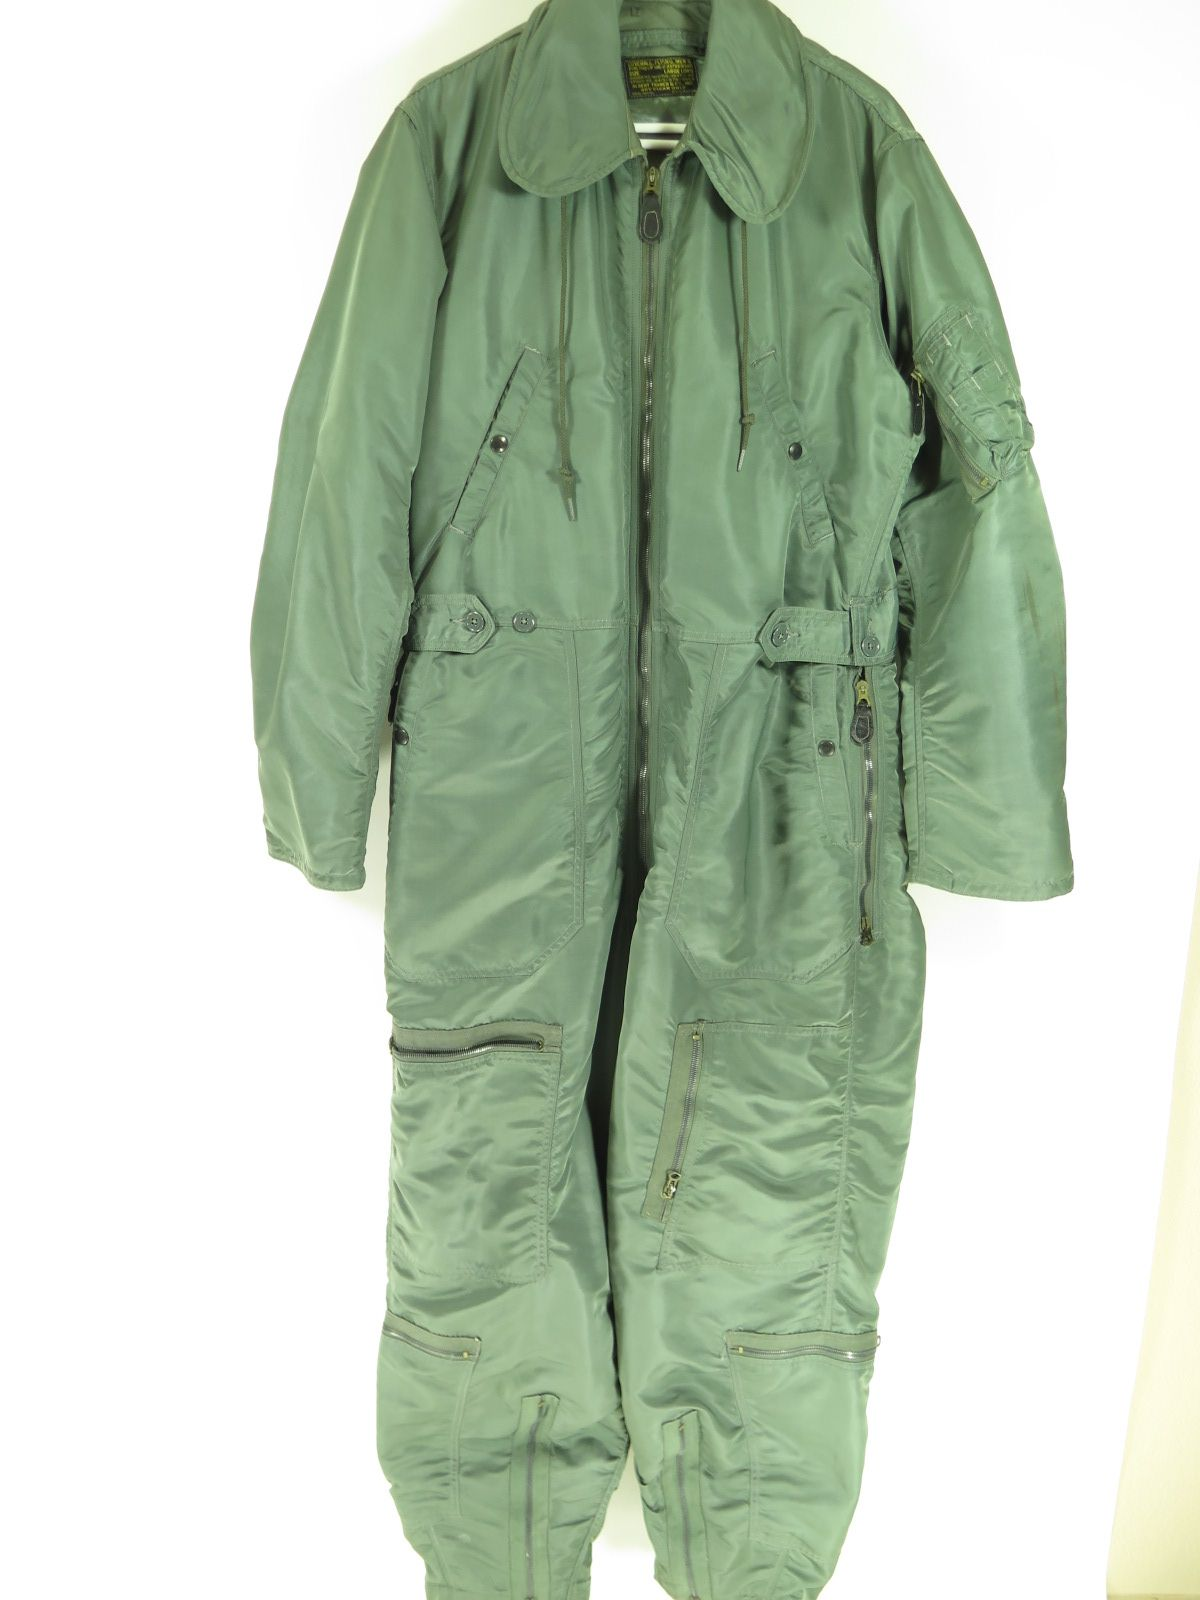 064207d868ea Vintage 70s CWU-1 P flight suit coveralls sage green by Albert Turner.  Men s Large Long. Find more men s and women s authentic vintage clothing at  The ...